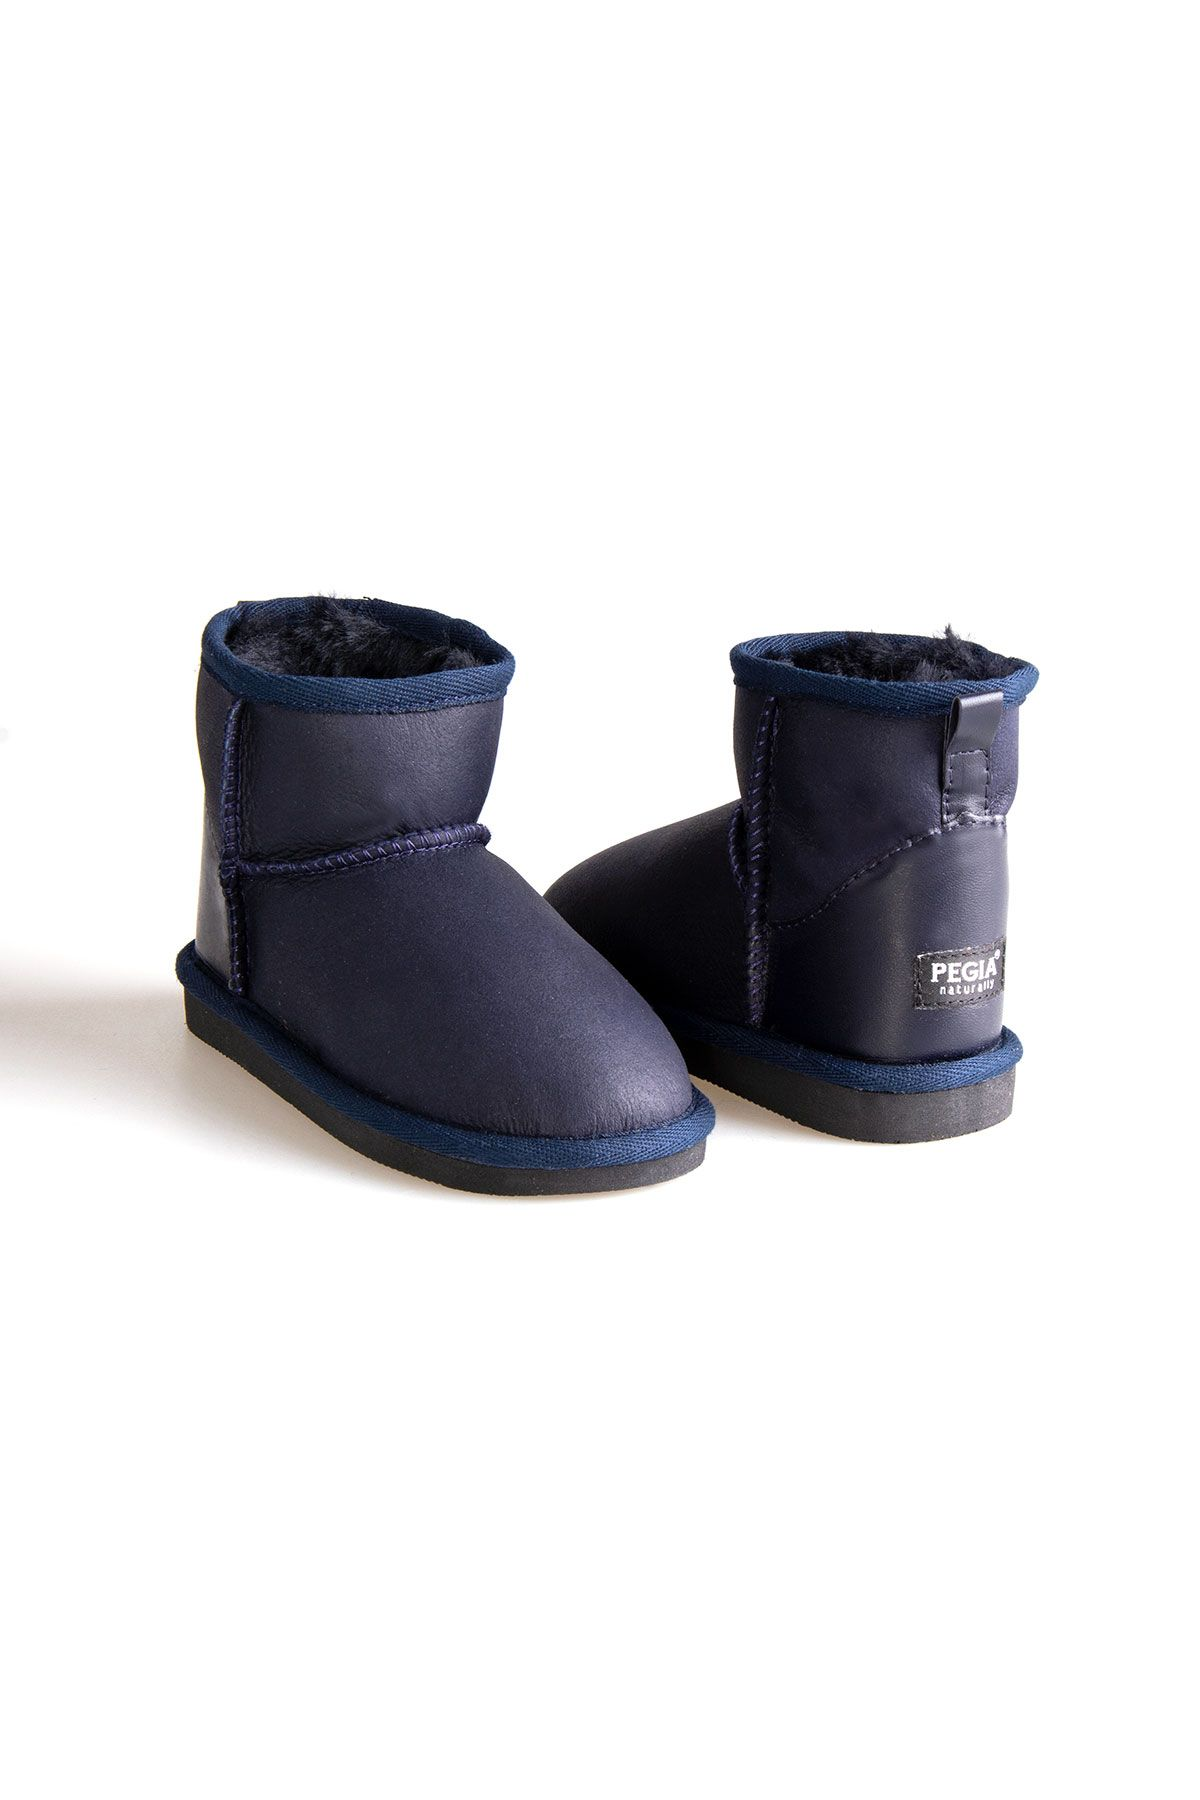 Pegia Kid's Genuine Sheepskin Lined Classic Boots 181008 Navy blue